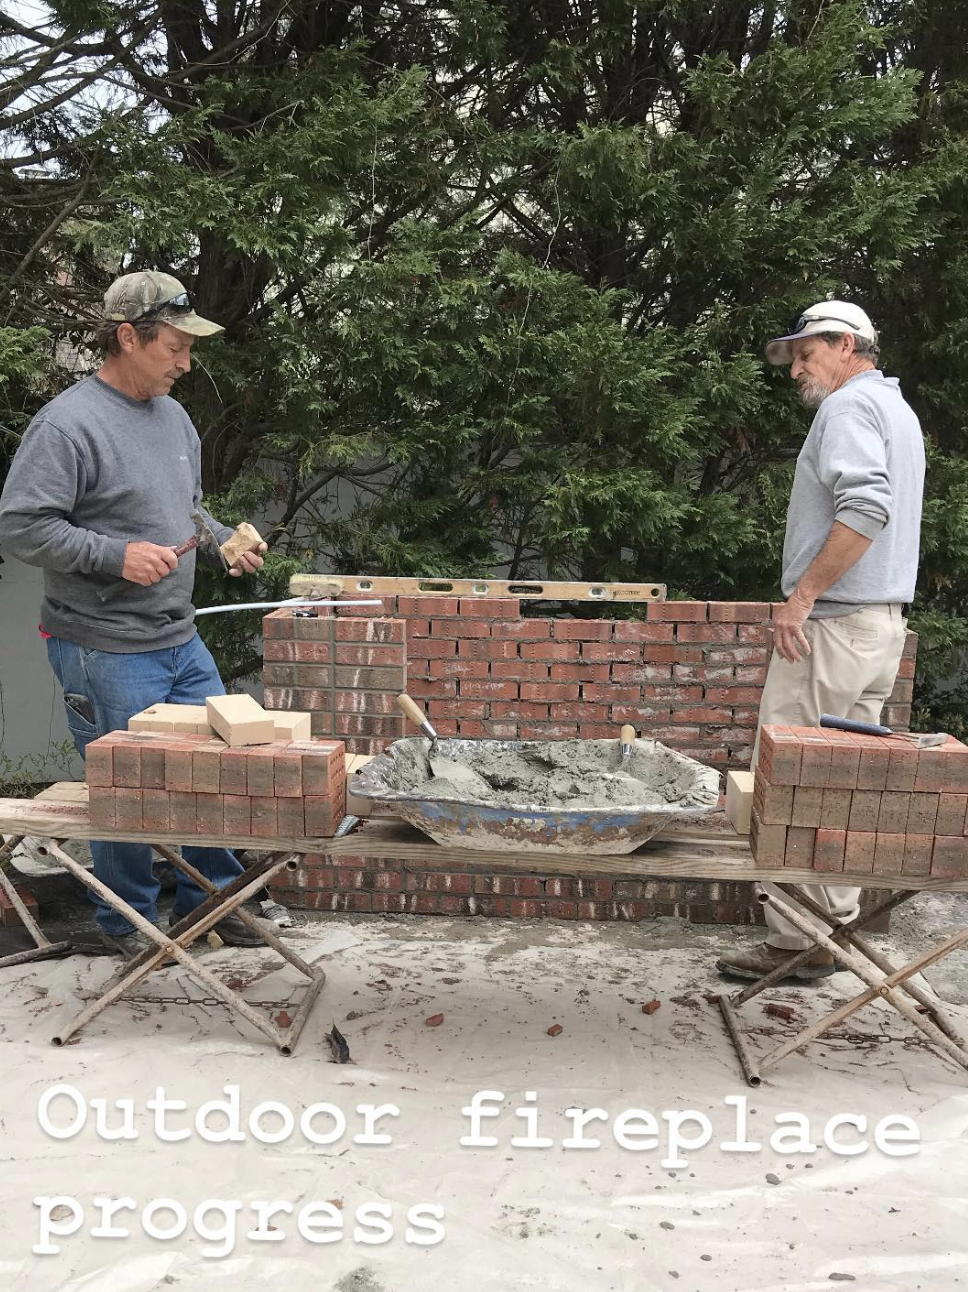 Outdoor fireplace being installed on my Graylyn project in Fayetteville, NC. www.janadonohedesigns.com